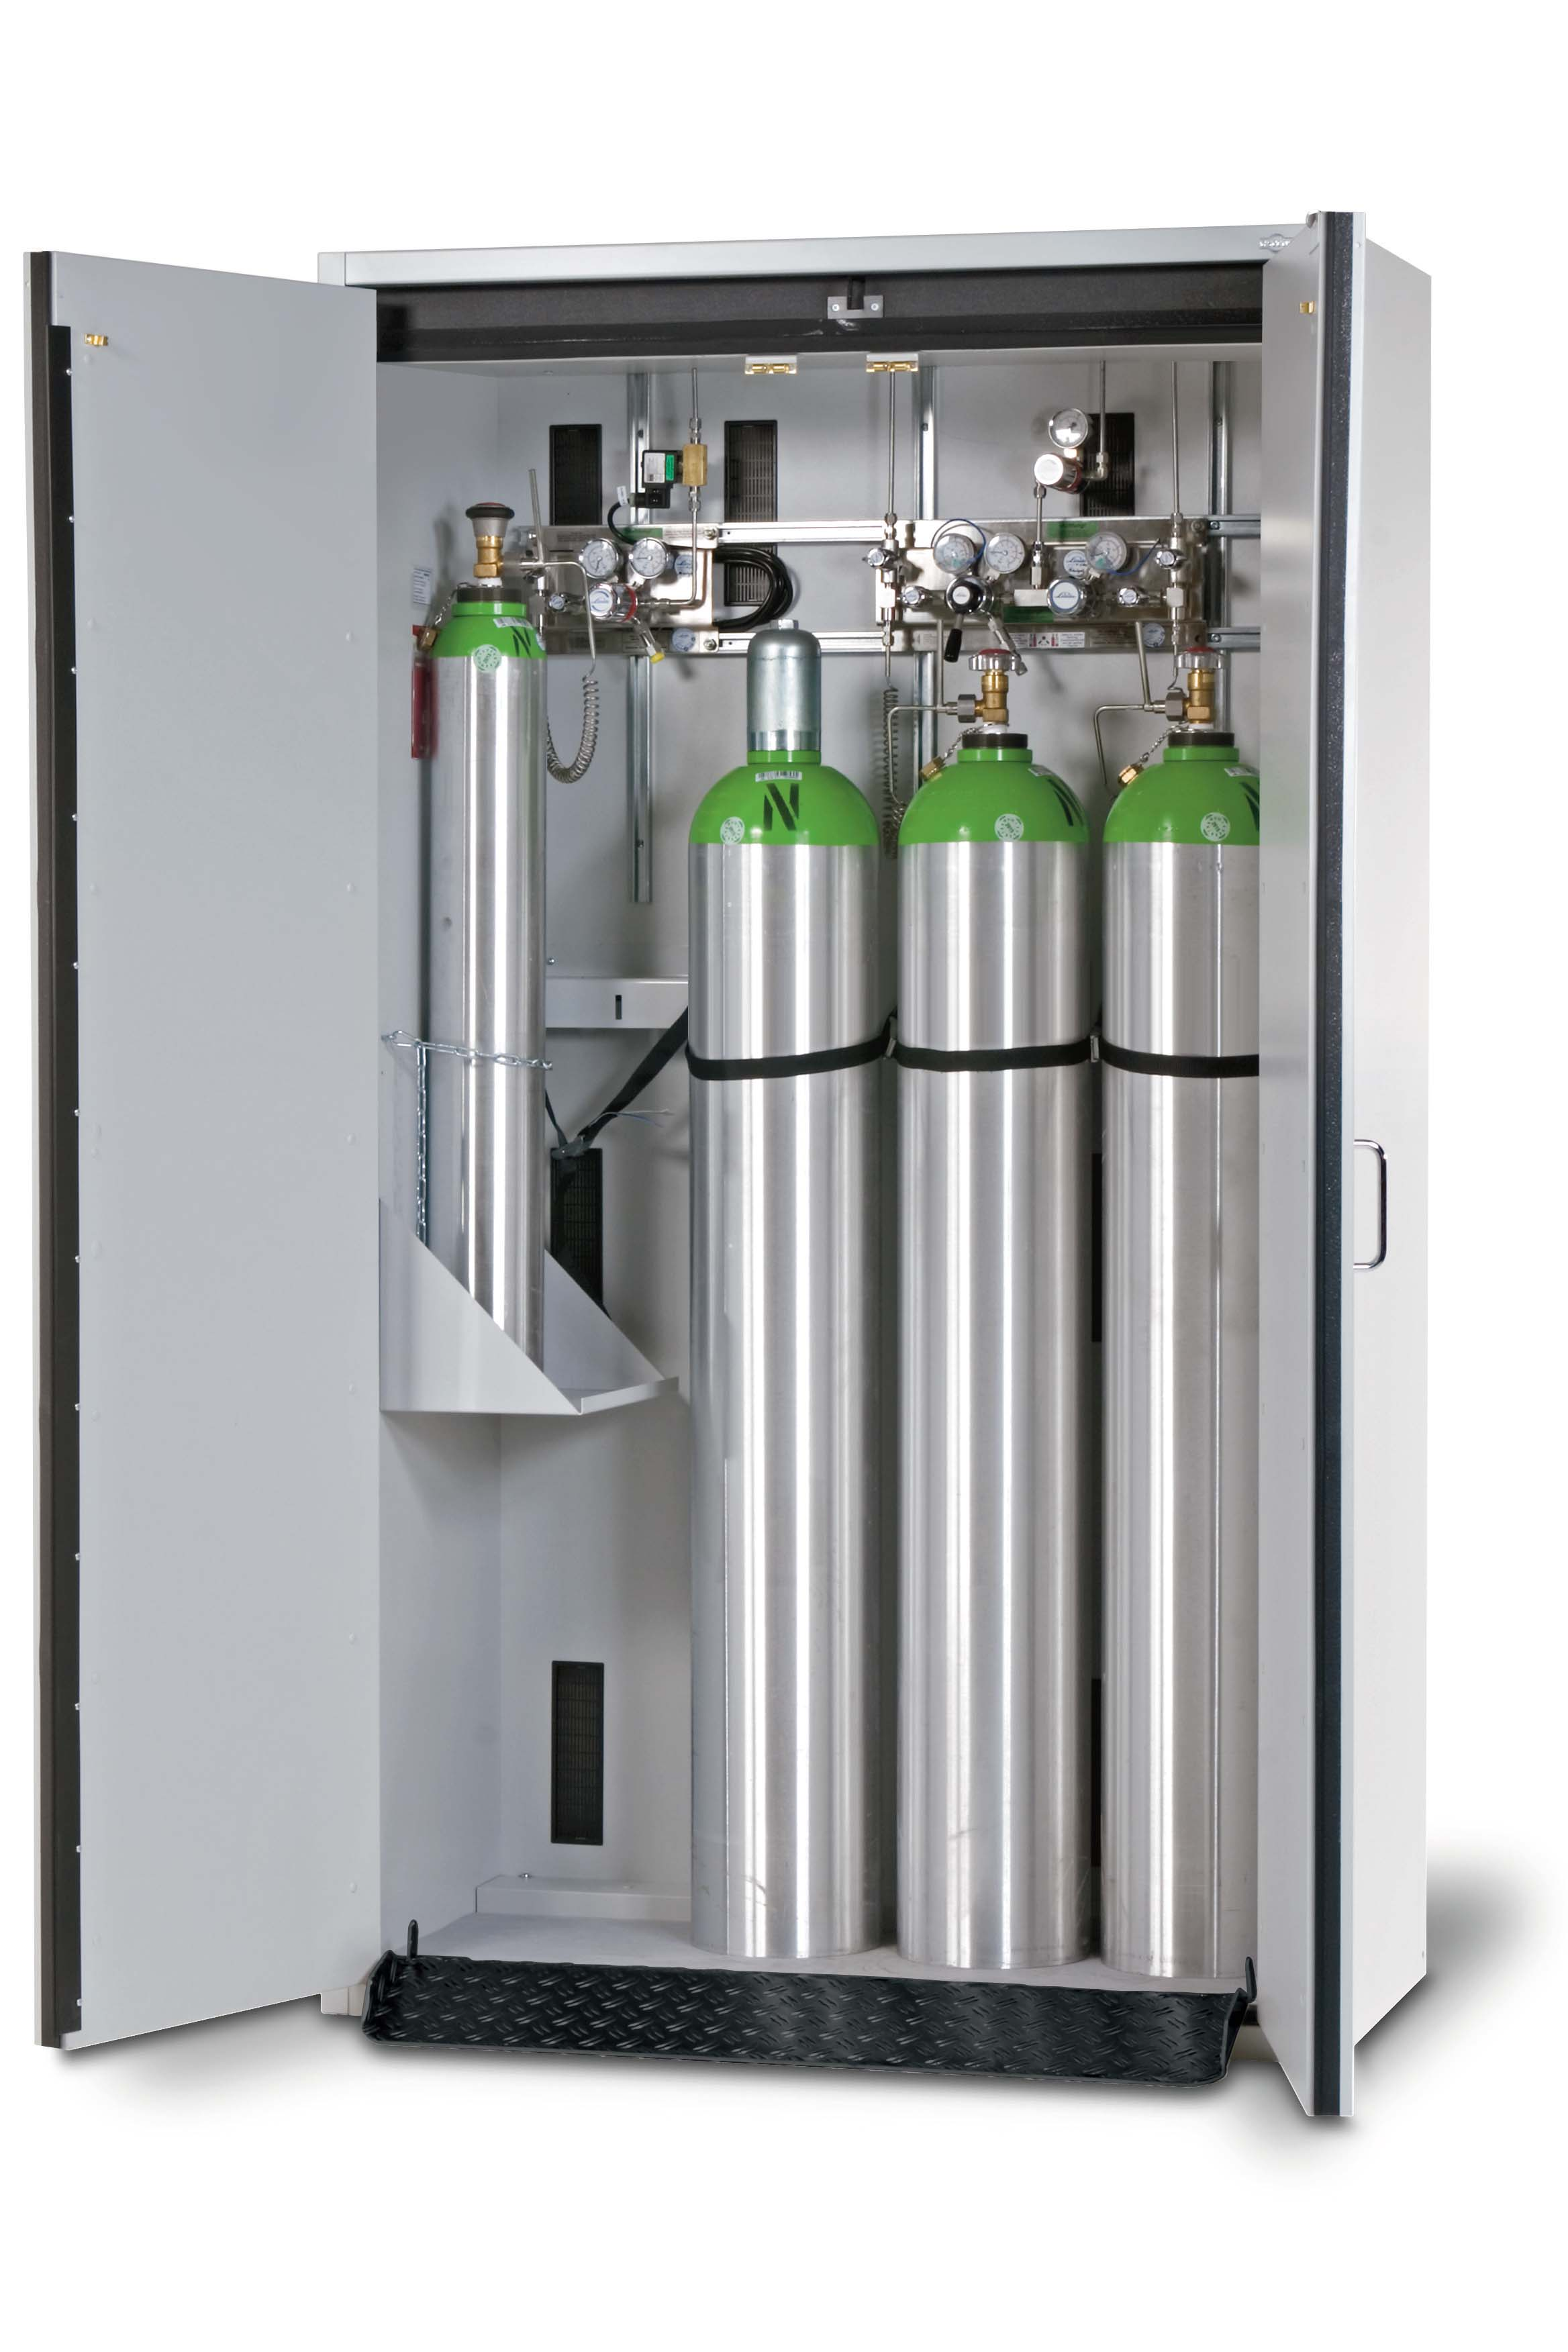 gas cylinder cabinets en 14470-2 - asecos - laboratory equipment